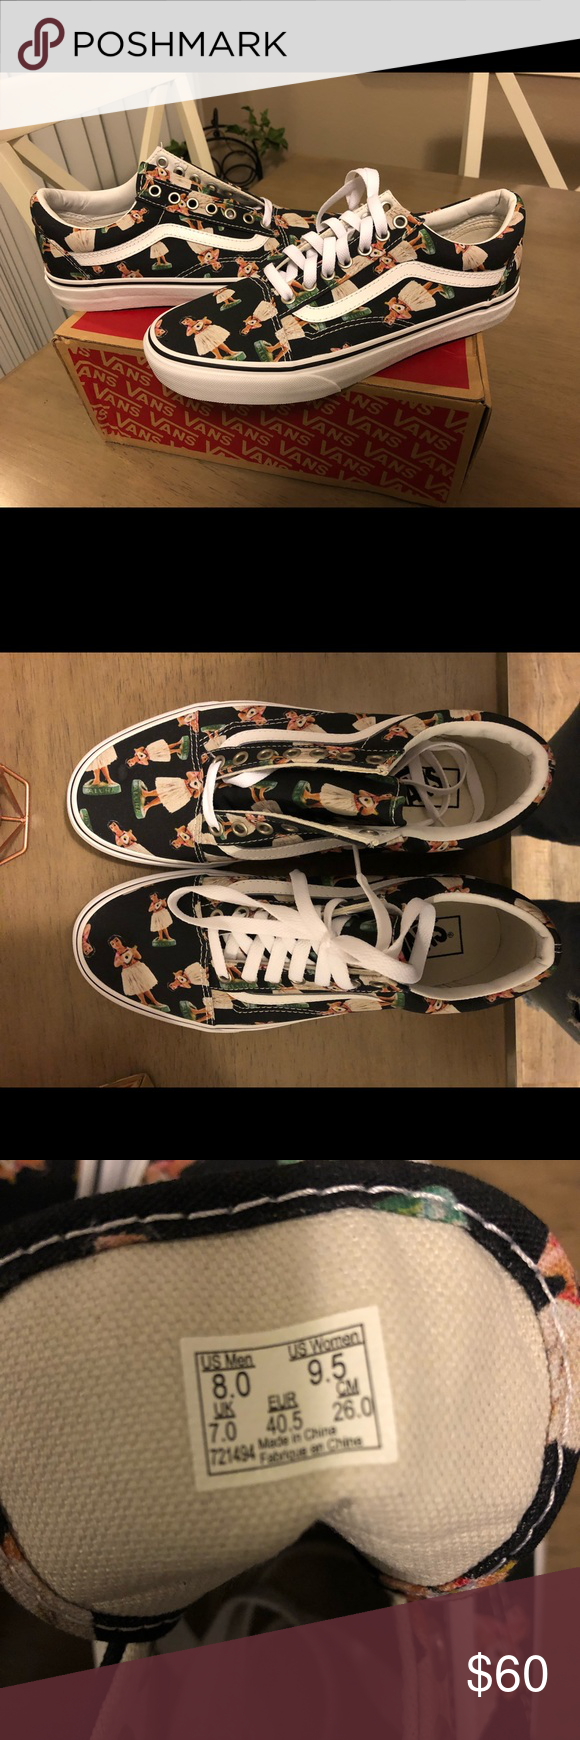 Brand new Vans hula girl shoes size 8